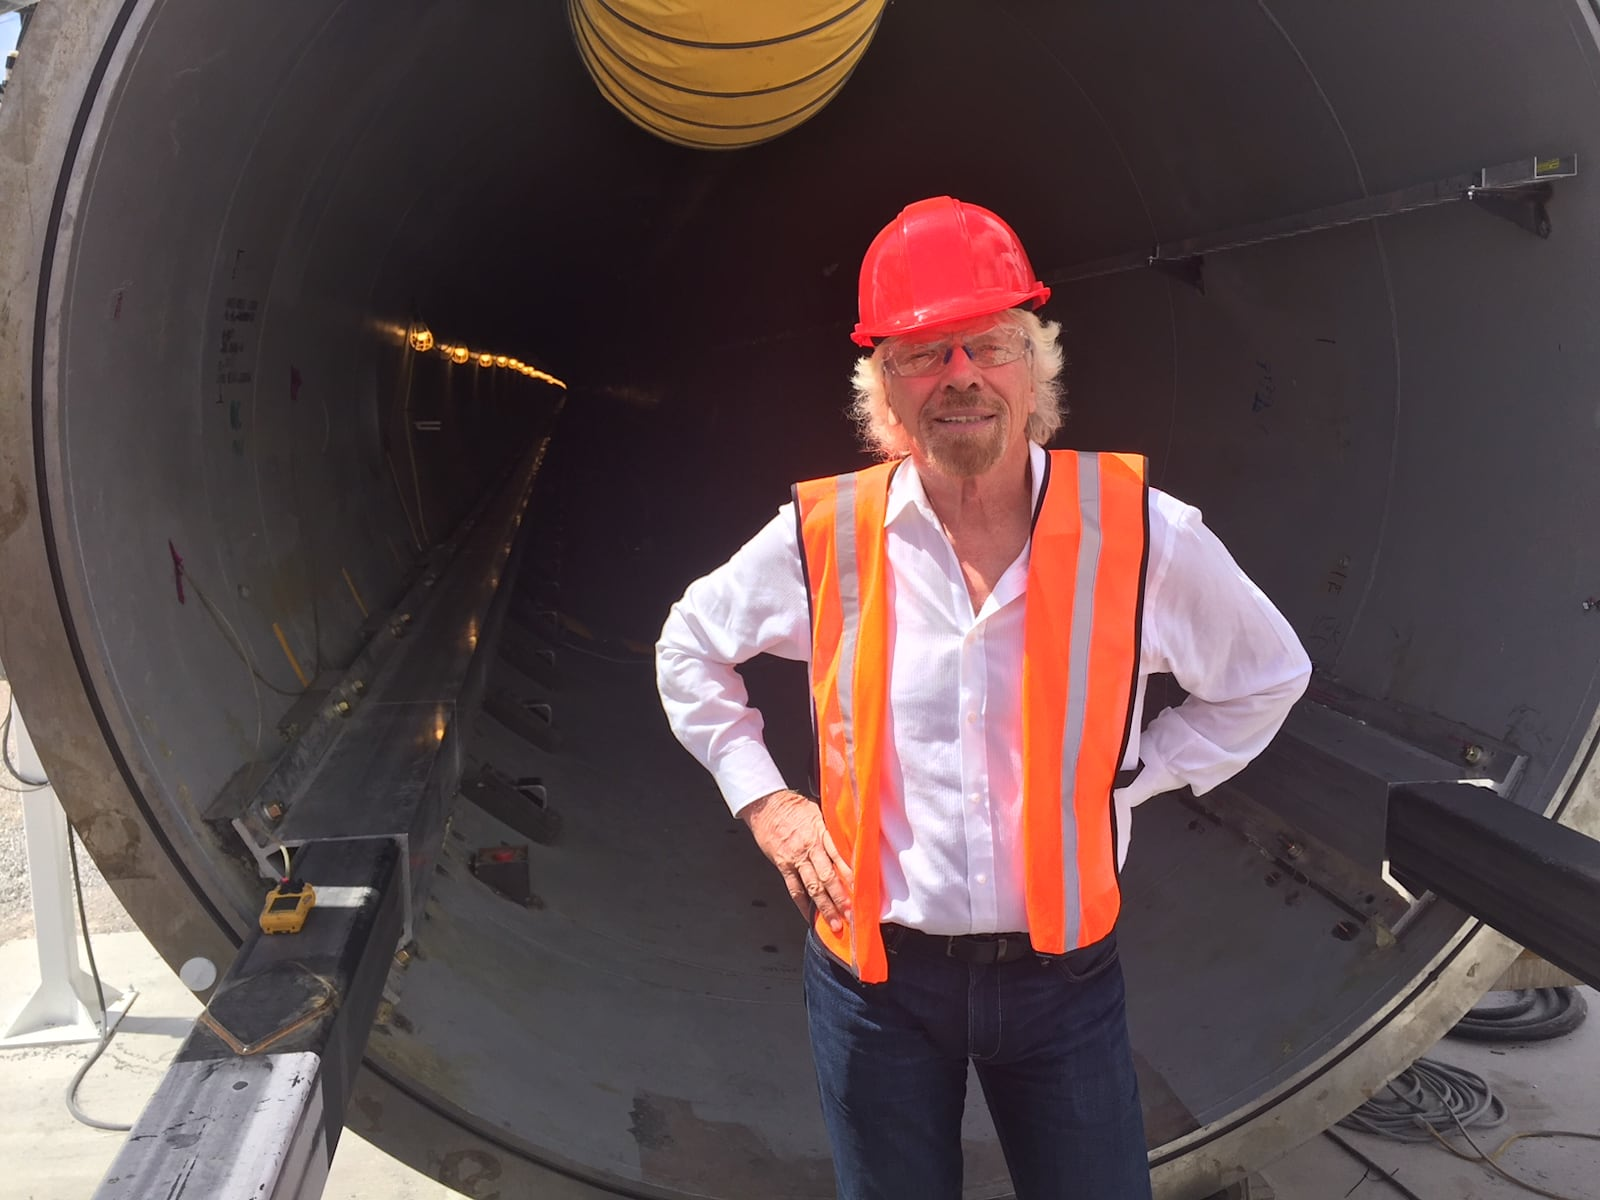 Hyperloop One becomes 'Virgin Hyperloop One' with Virgin Group investment https://t.co/cy4P7aZ7Xg by @etherington https://t.co/emjpFvkt5L